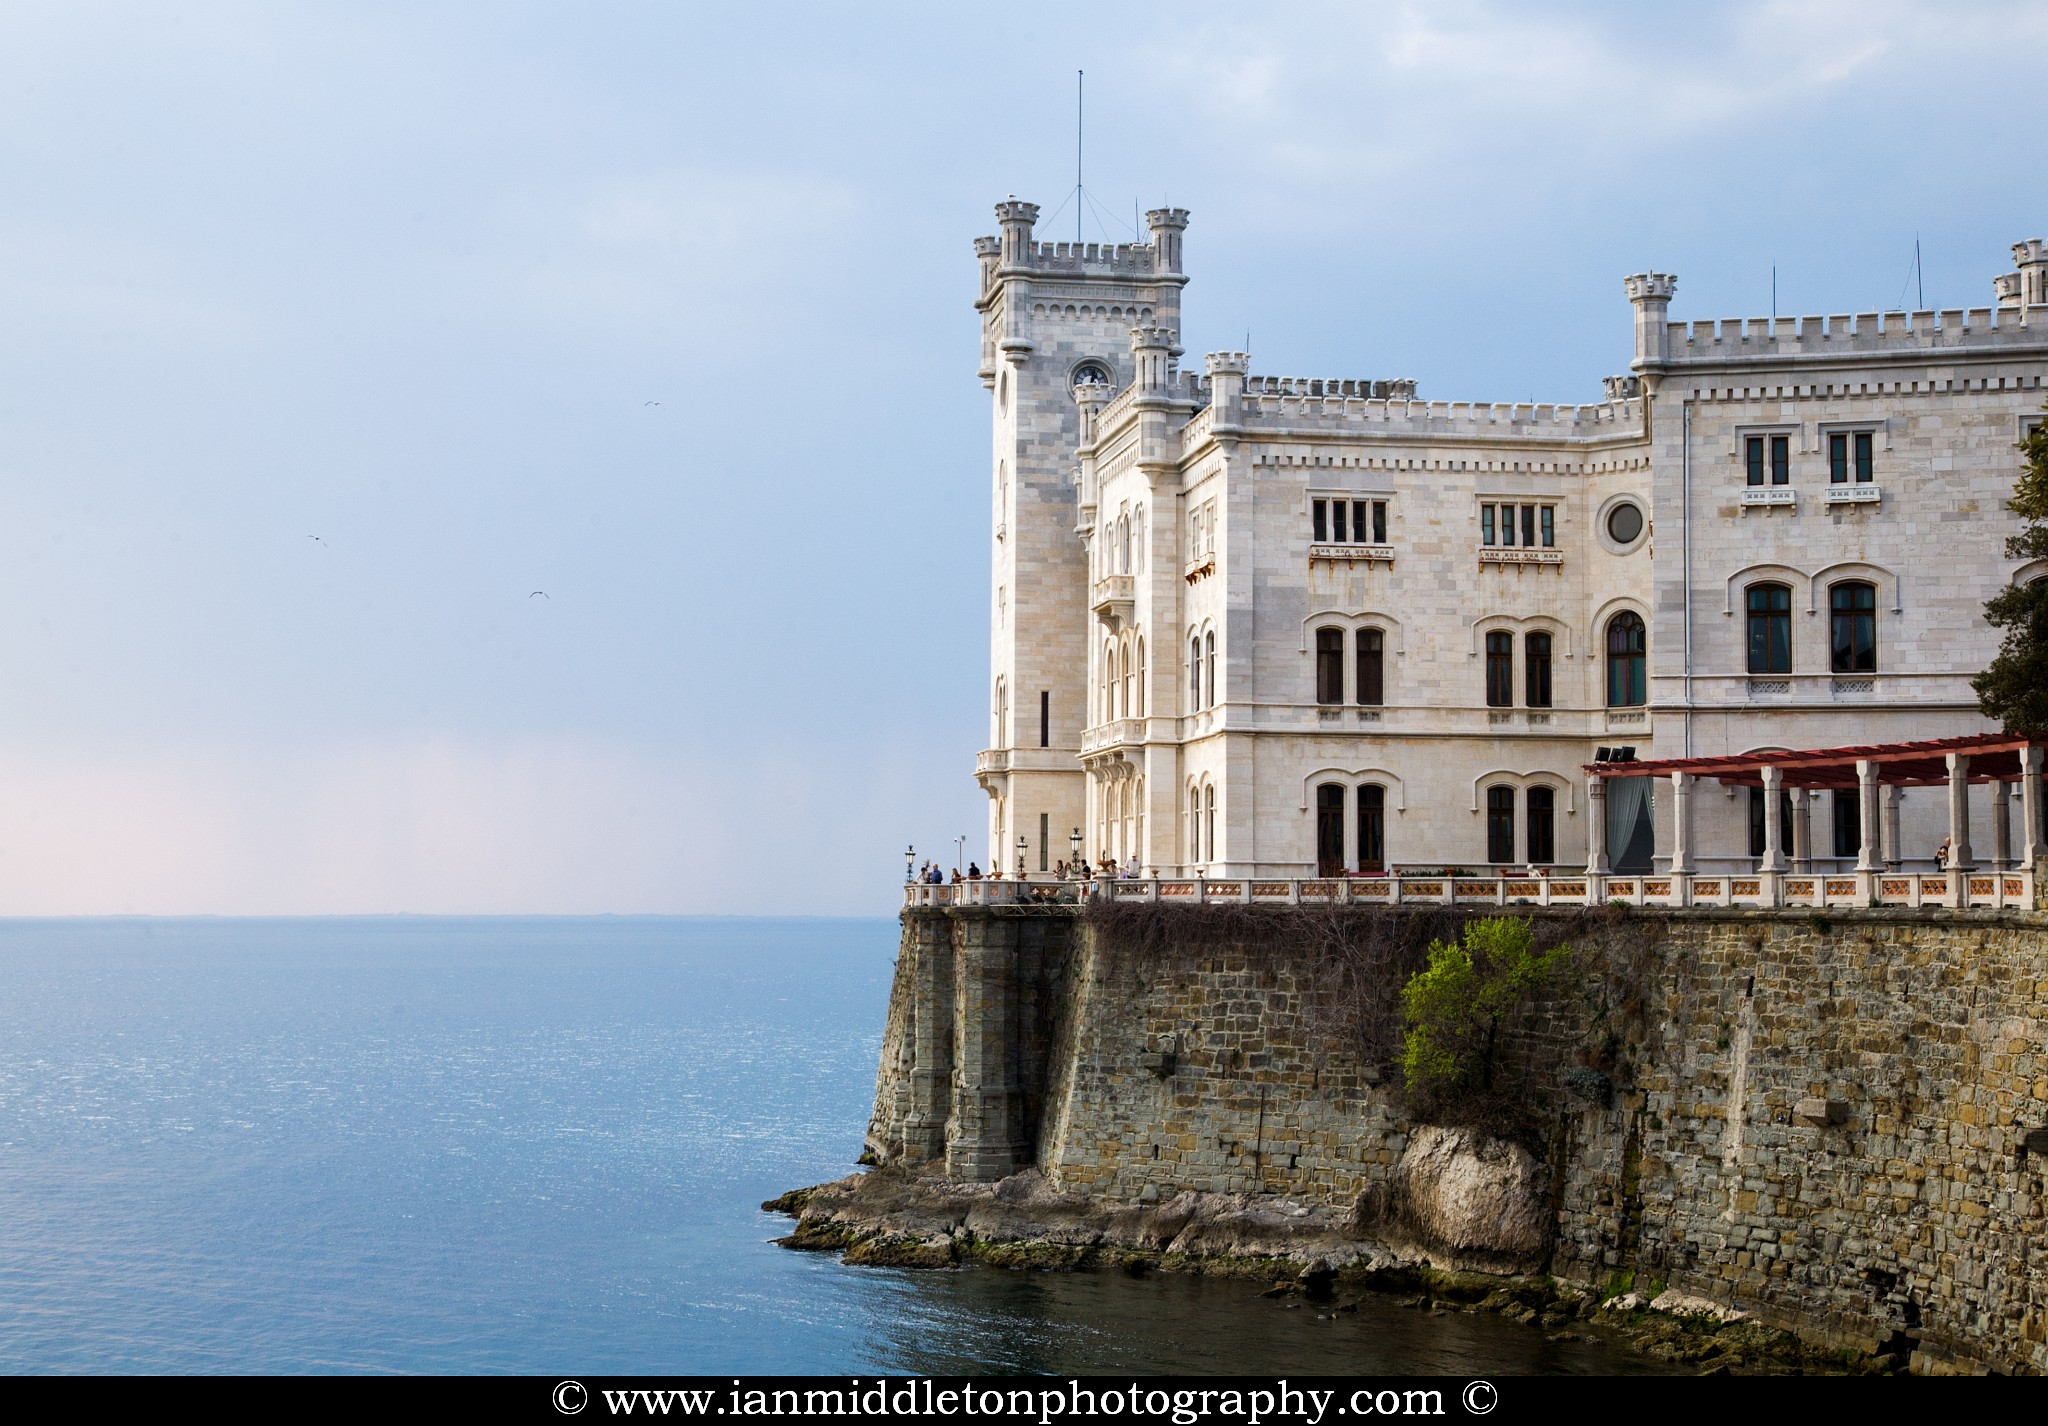 Castello di Miramare (Miramare castle) was built in 1855-60 for Archduke Maximilian of Austria, later briefly emperor of Mexico. It is now owned by the State and houses a historical museum. From the terrace and the park (bronze statue of Maximilian) there are magnificent views of the sea, which is protected as a nature reserve, the Parco Marino di Miramare.